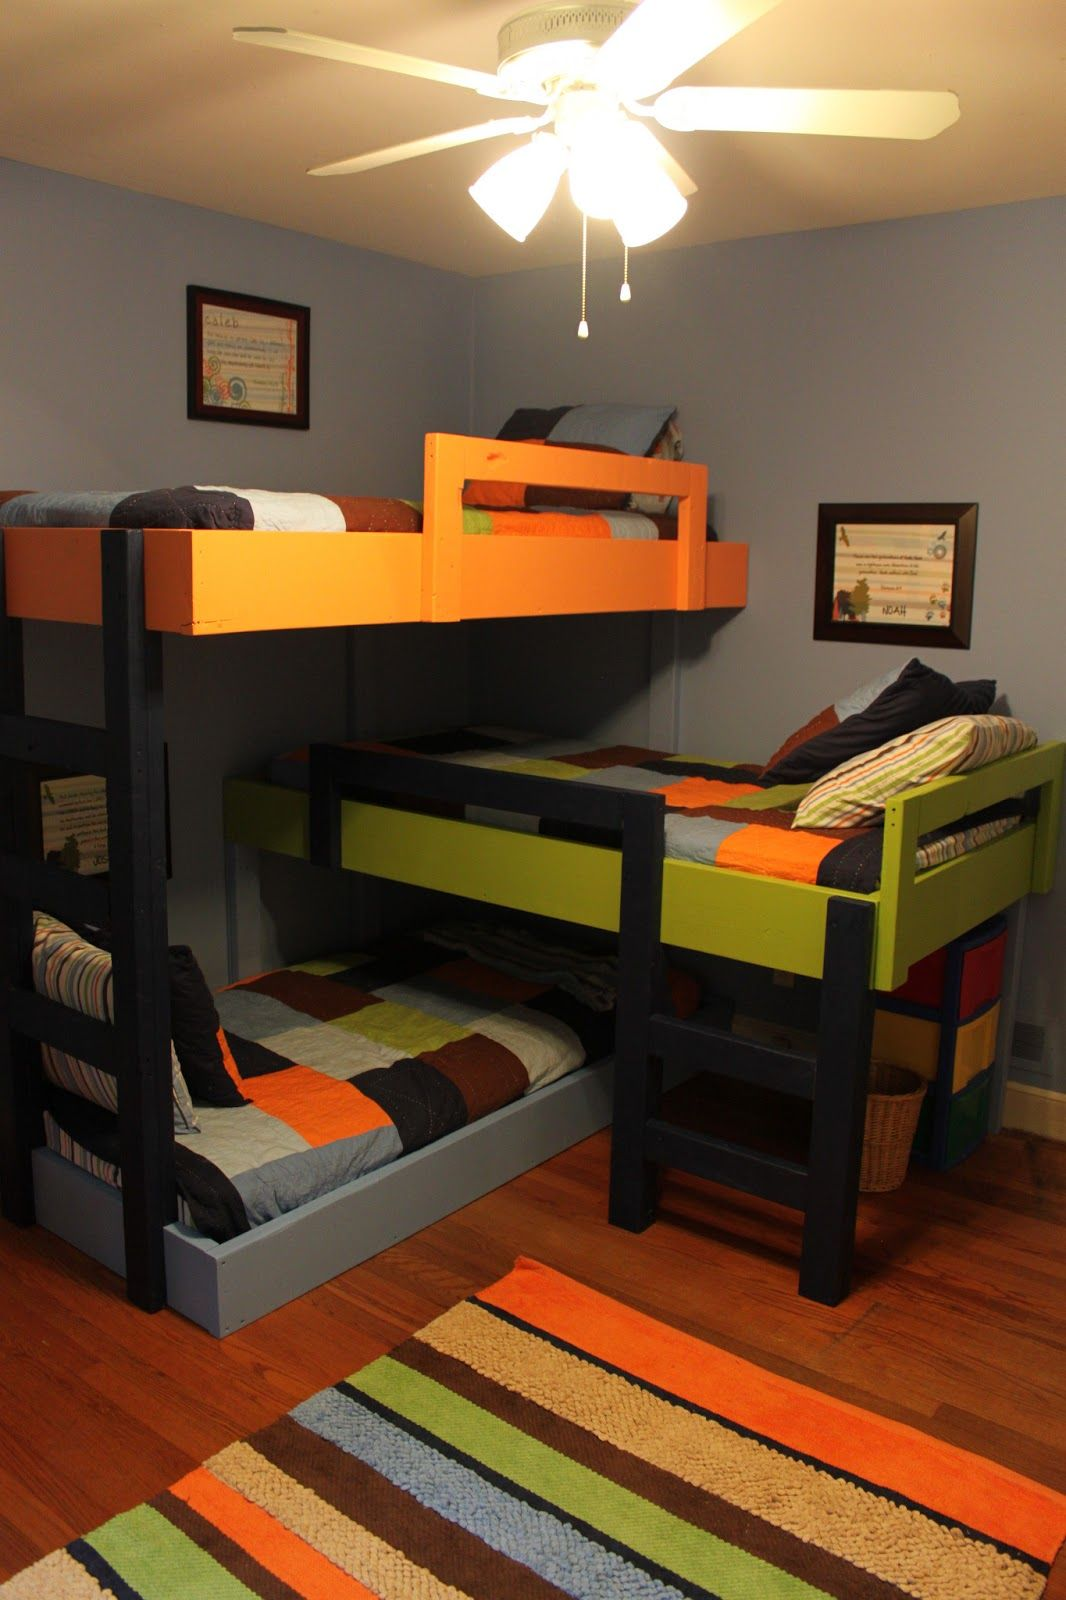 Space Saving Triple Bunkbeds My Girls Already Have Bunks But It Takes Up Half The Room This Is An Interesting Setup